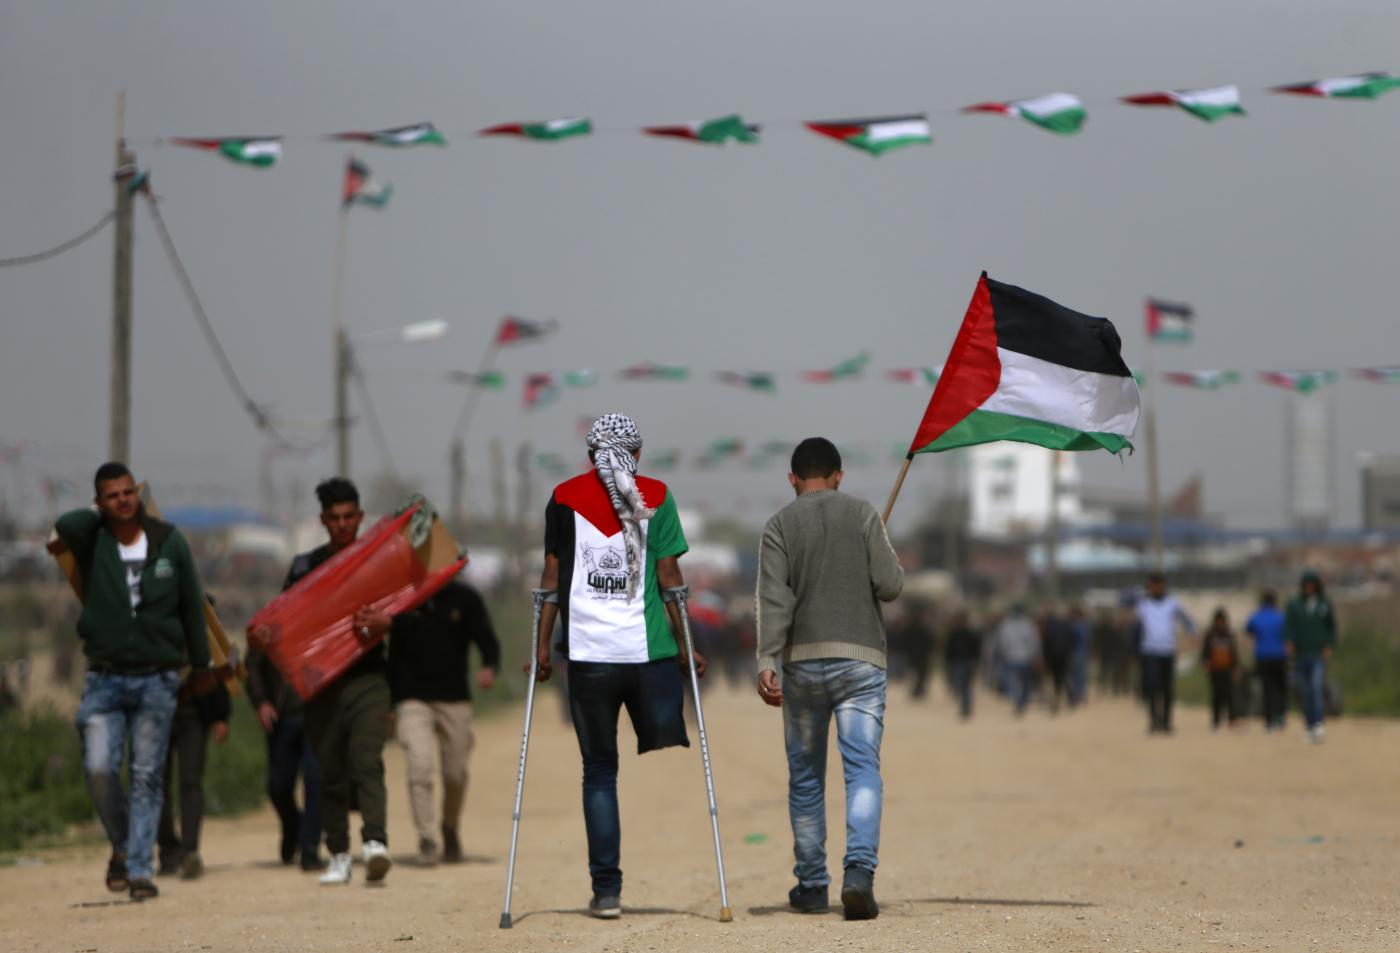 Israeli blockade of Gaza severely hindering lives of disabled people, says report